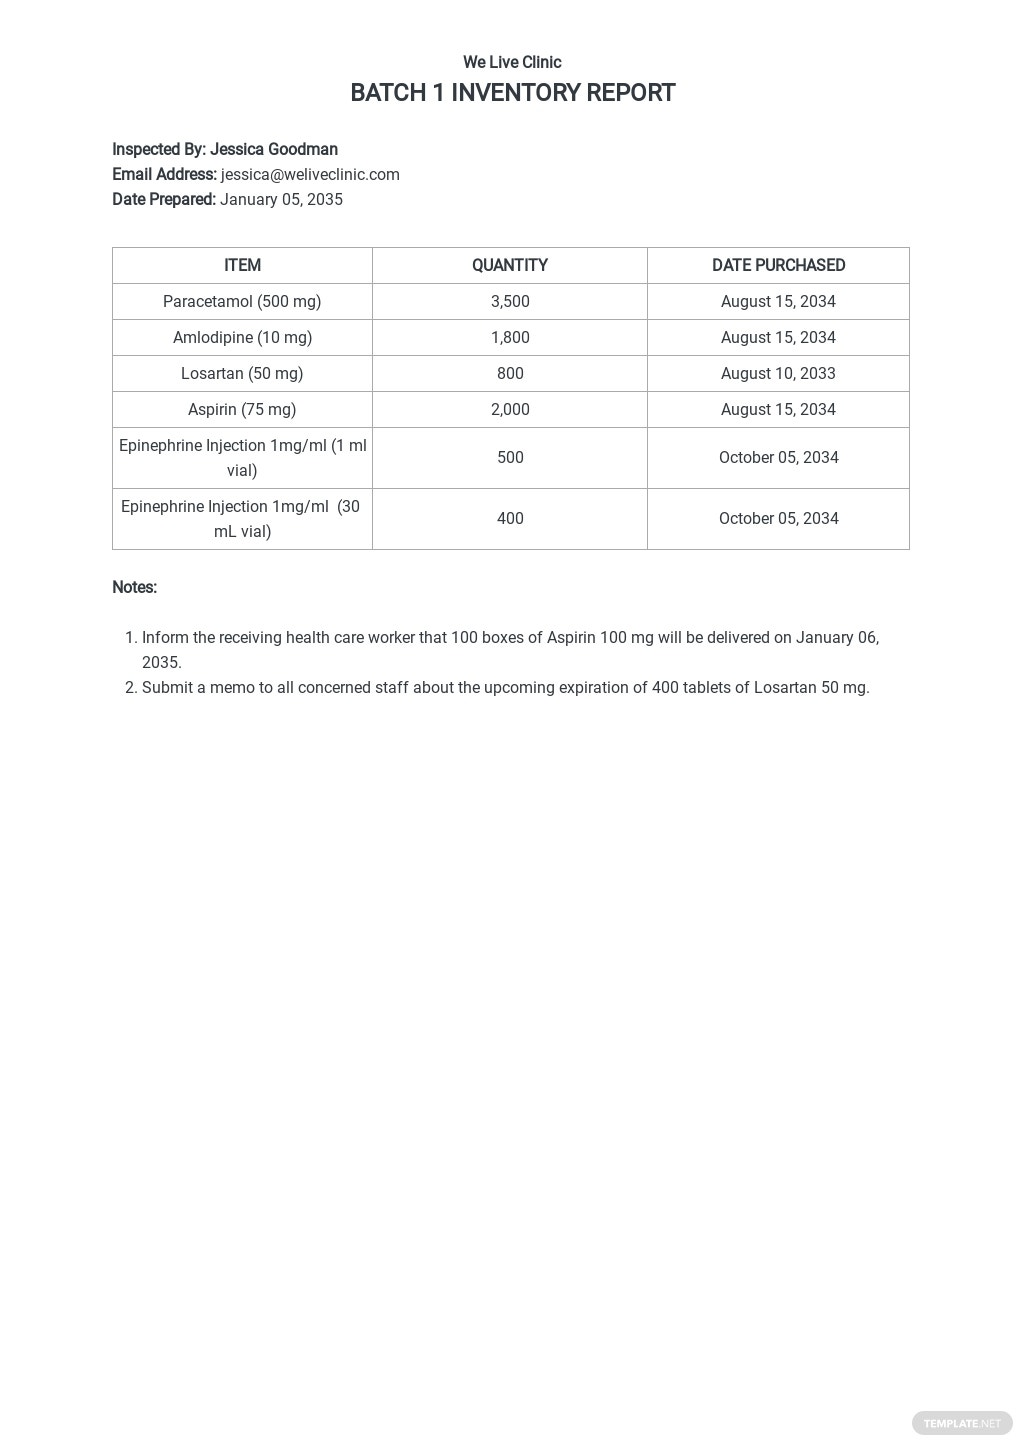 Inventory Report Template.jpe